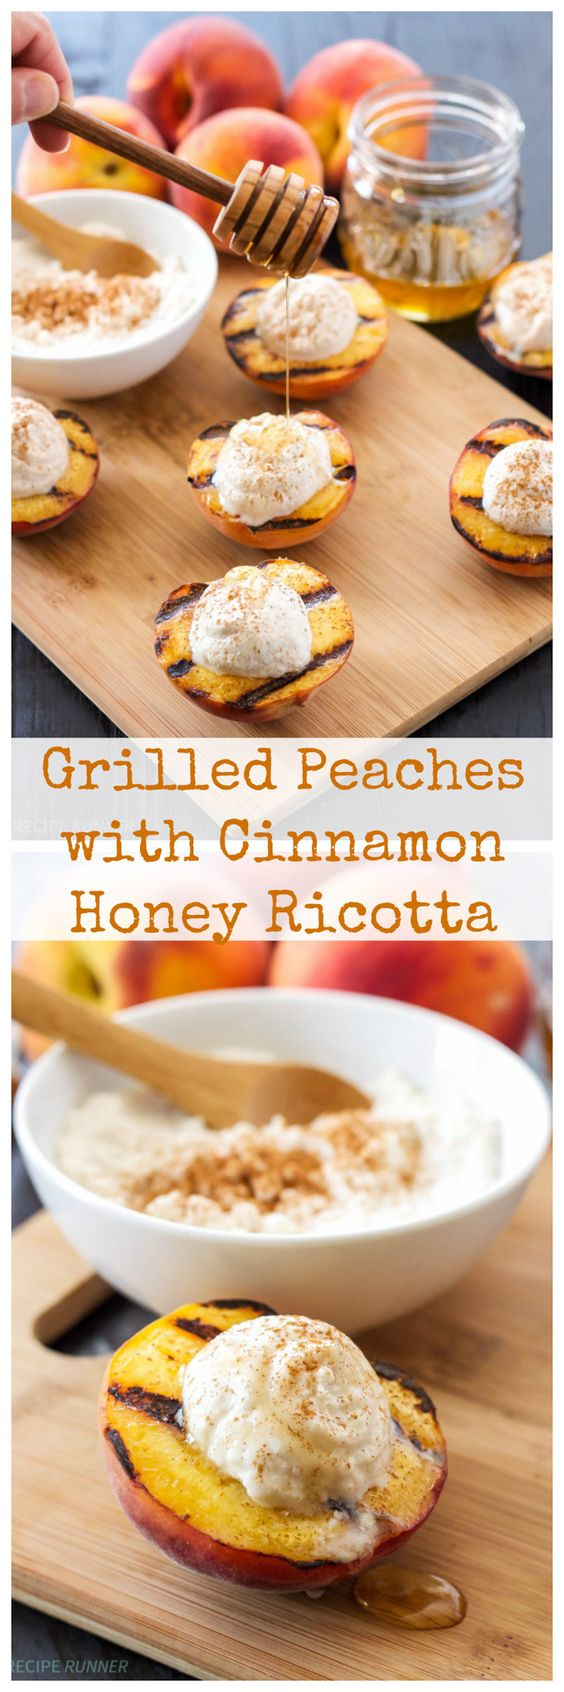 Grilled Peaches with Cinnamon Honey Ricotta | This light and not too sweet summer dessert takes only minutes to make and tastes so good!: